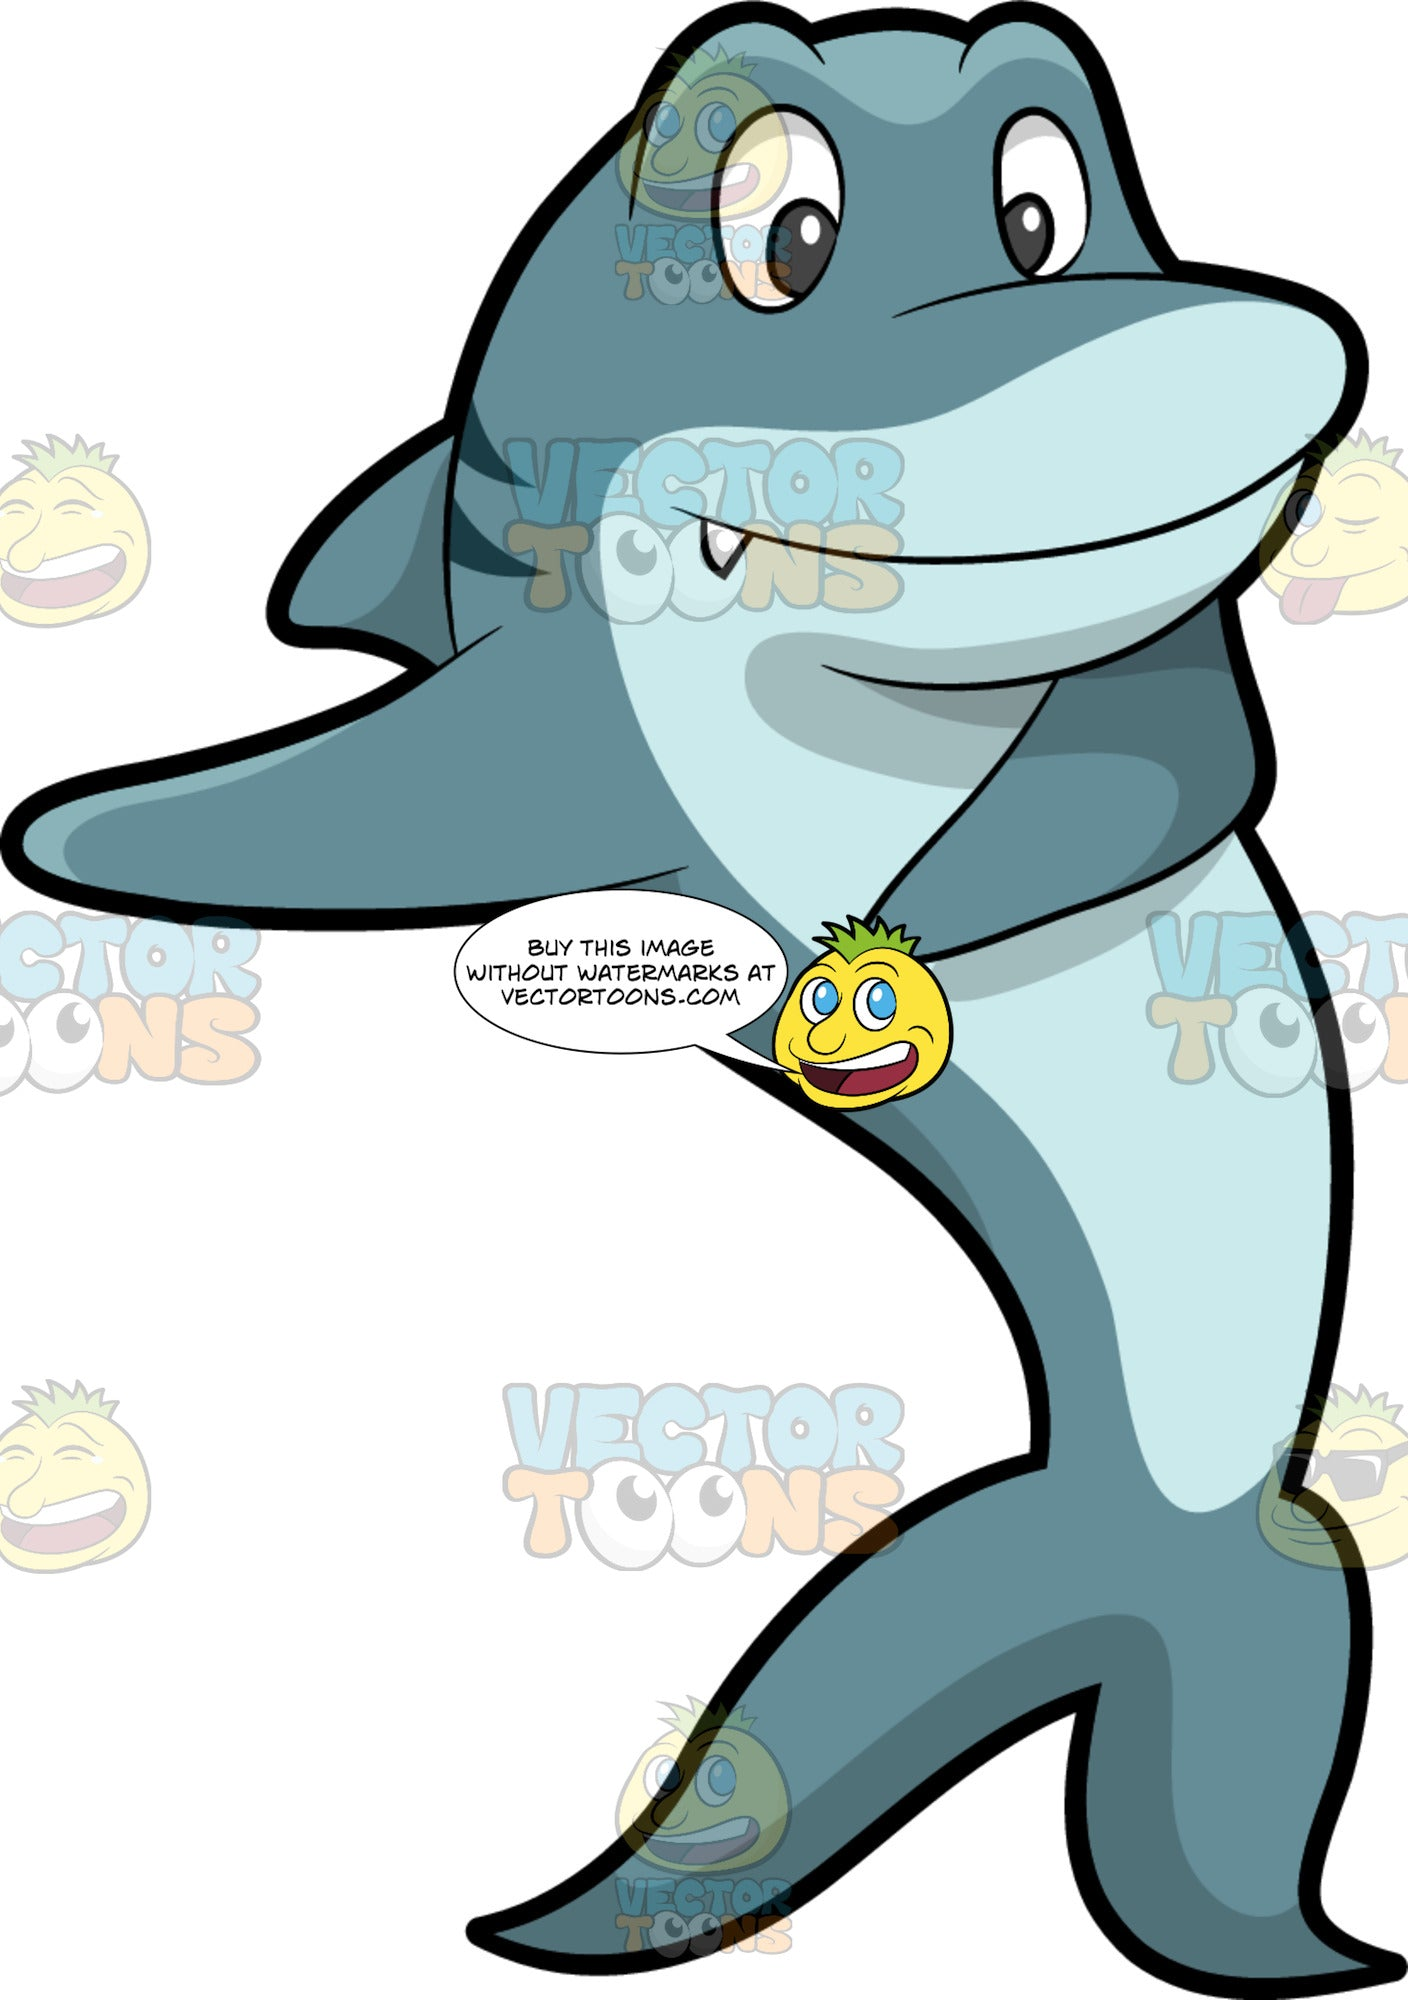 A Shark Dancing The Floss. A bluish gray shark with stripes at its back, moving its fins and smiles while dancing the floss